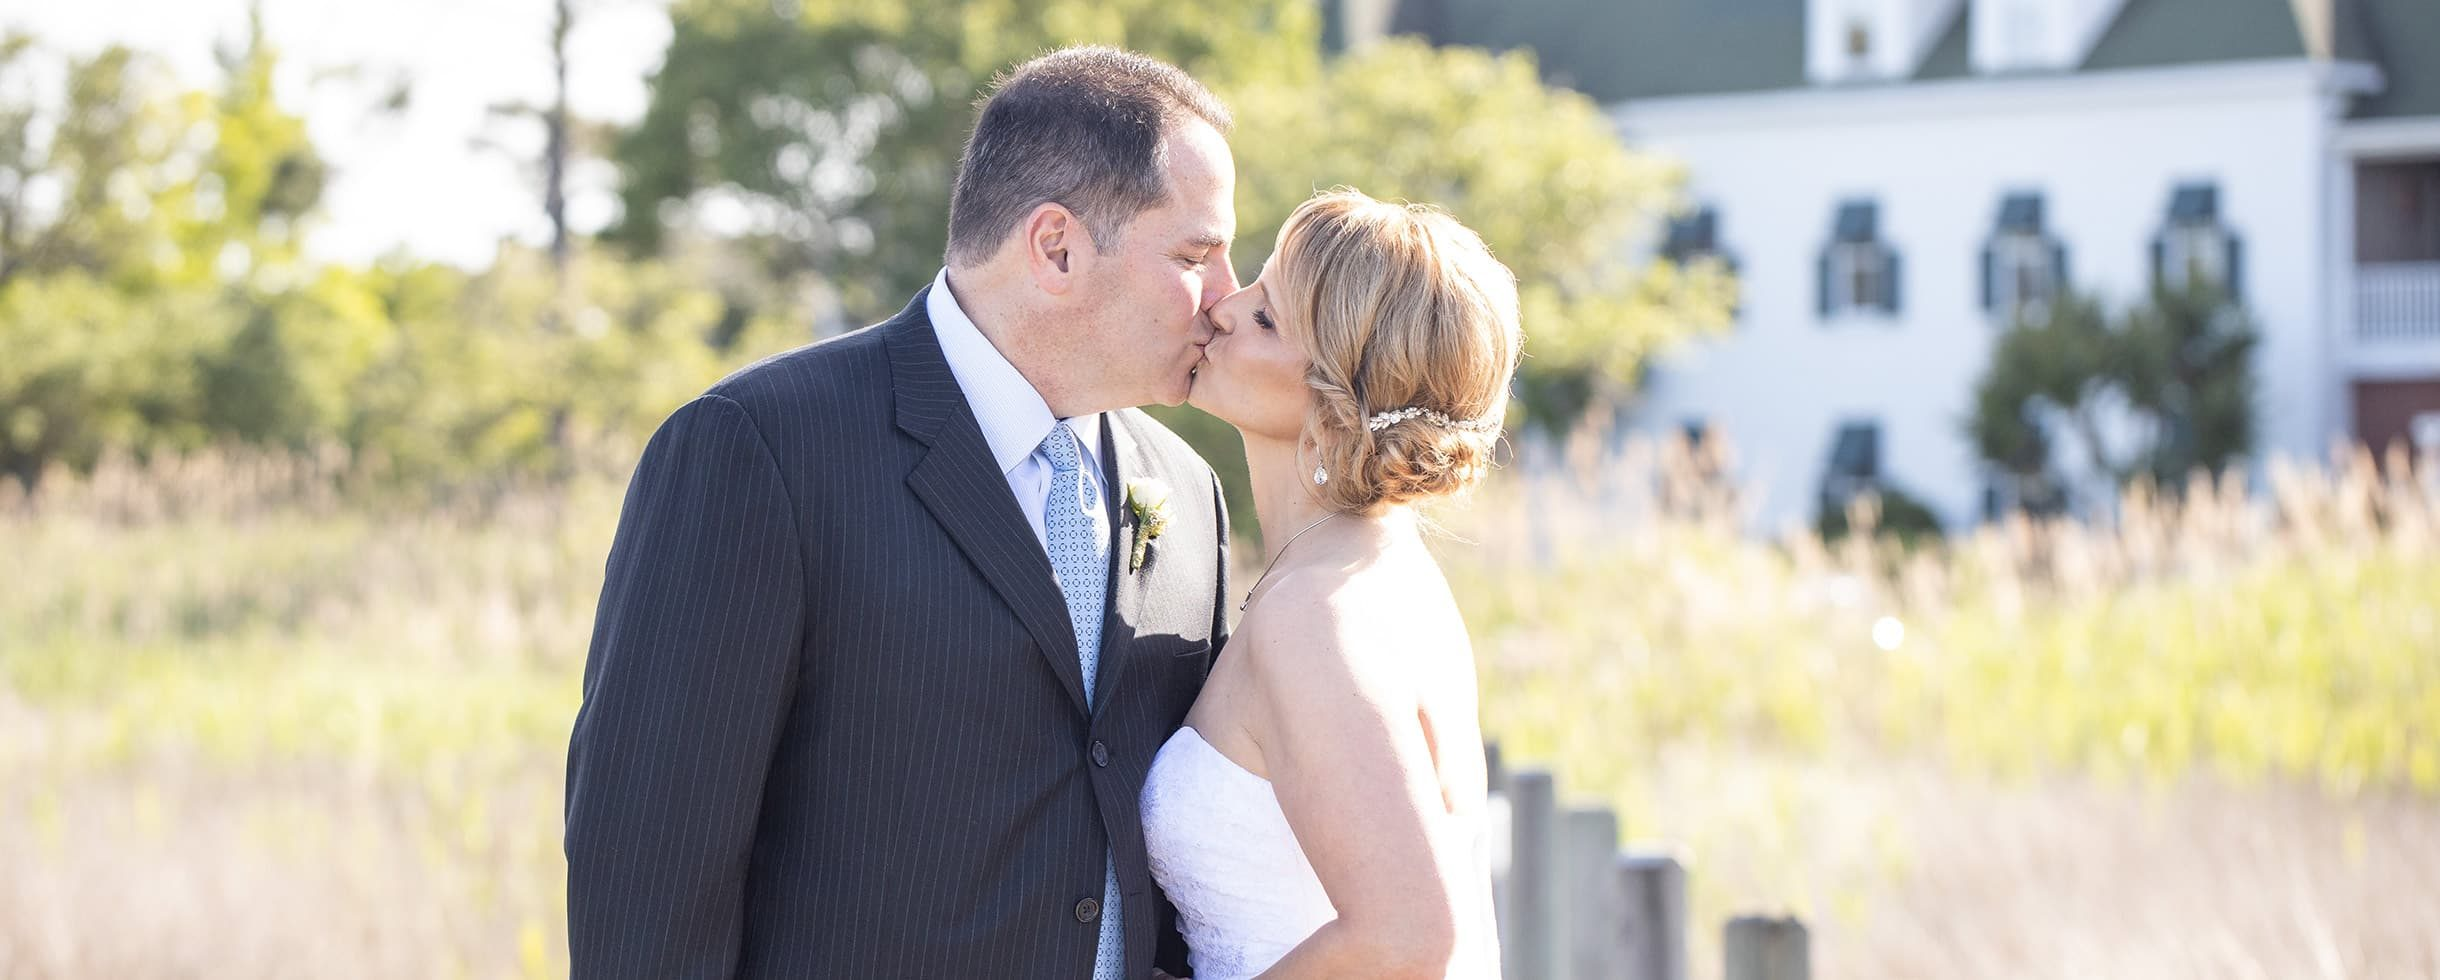 Love of Two Elopement Package at White Doe Inn